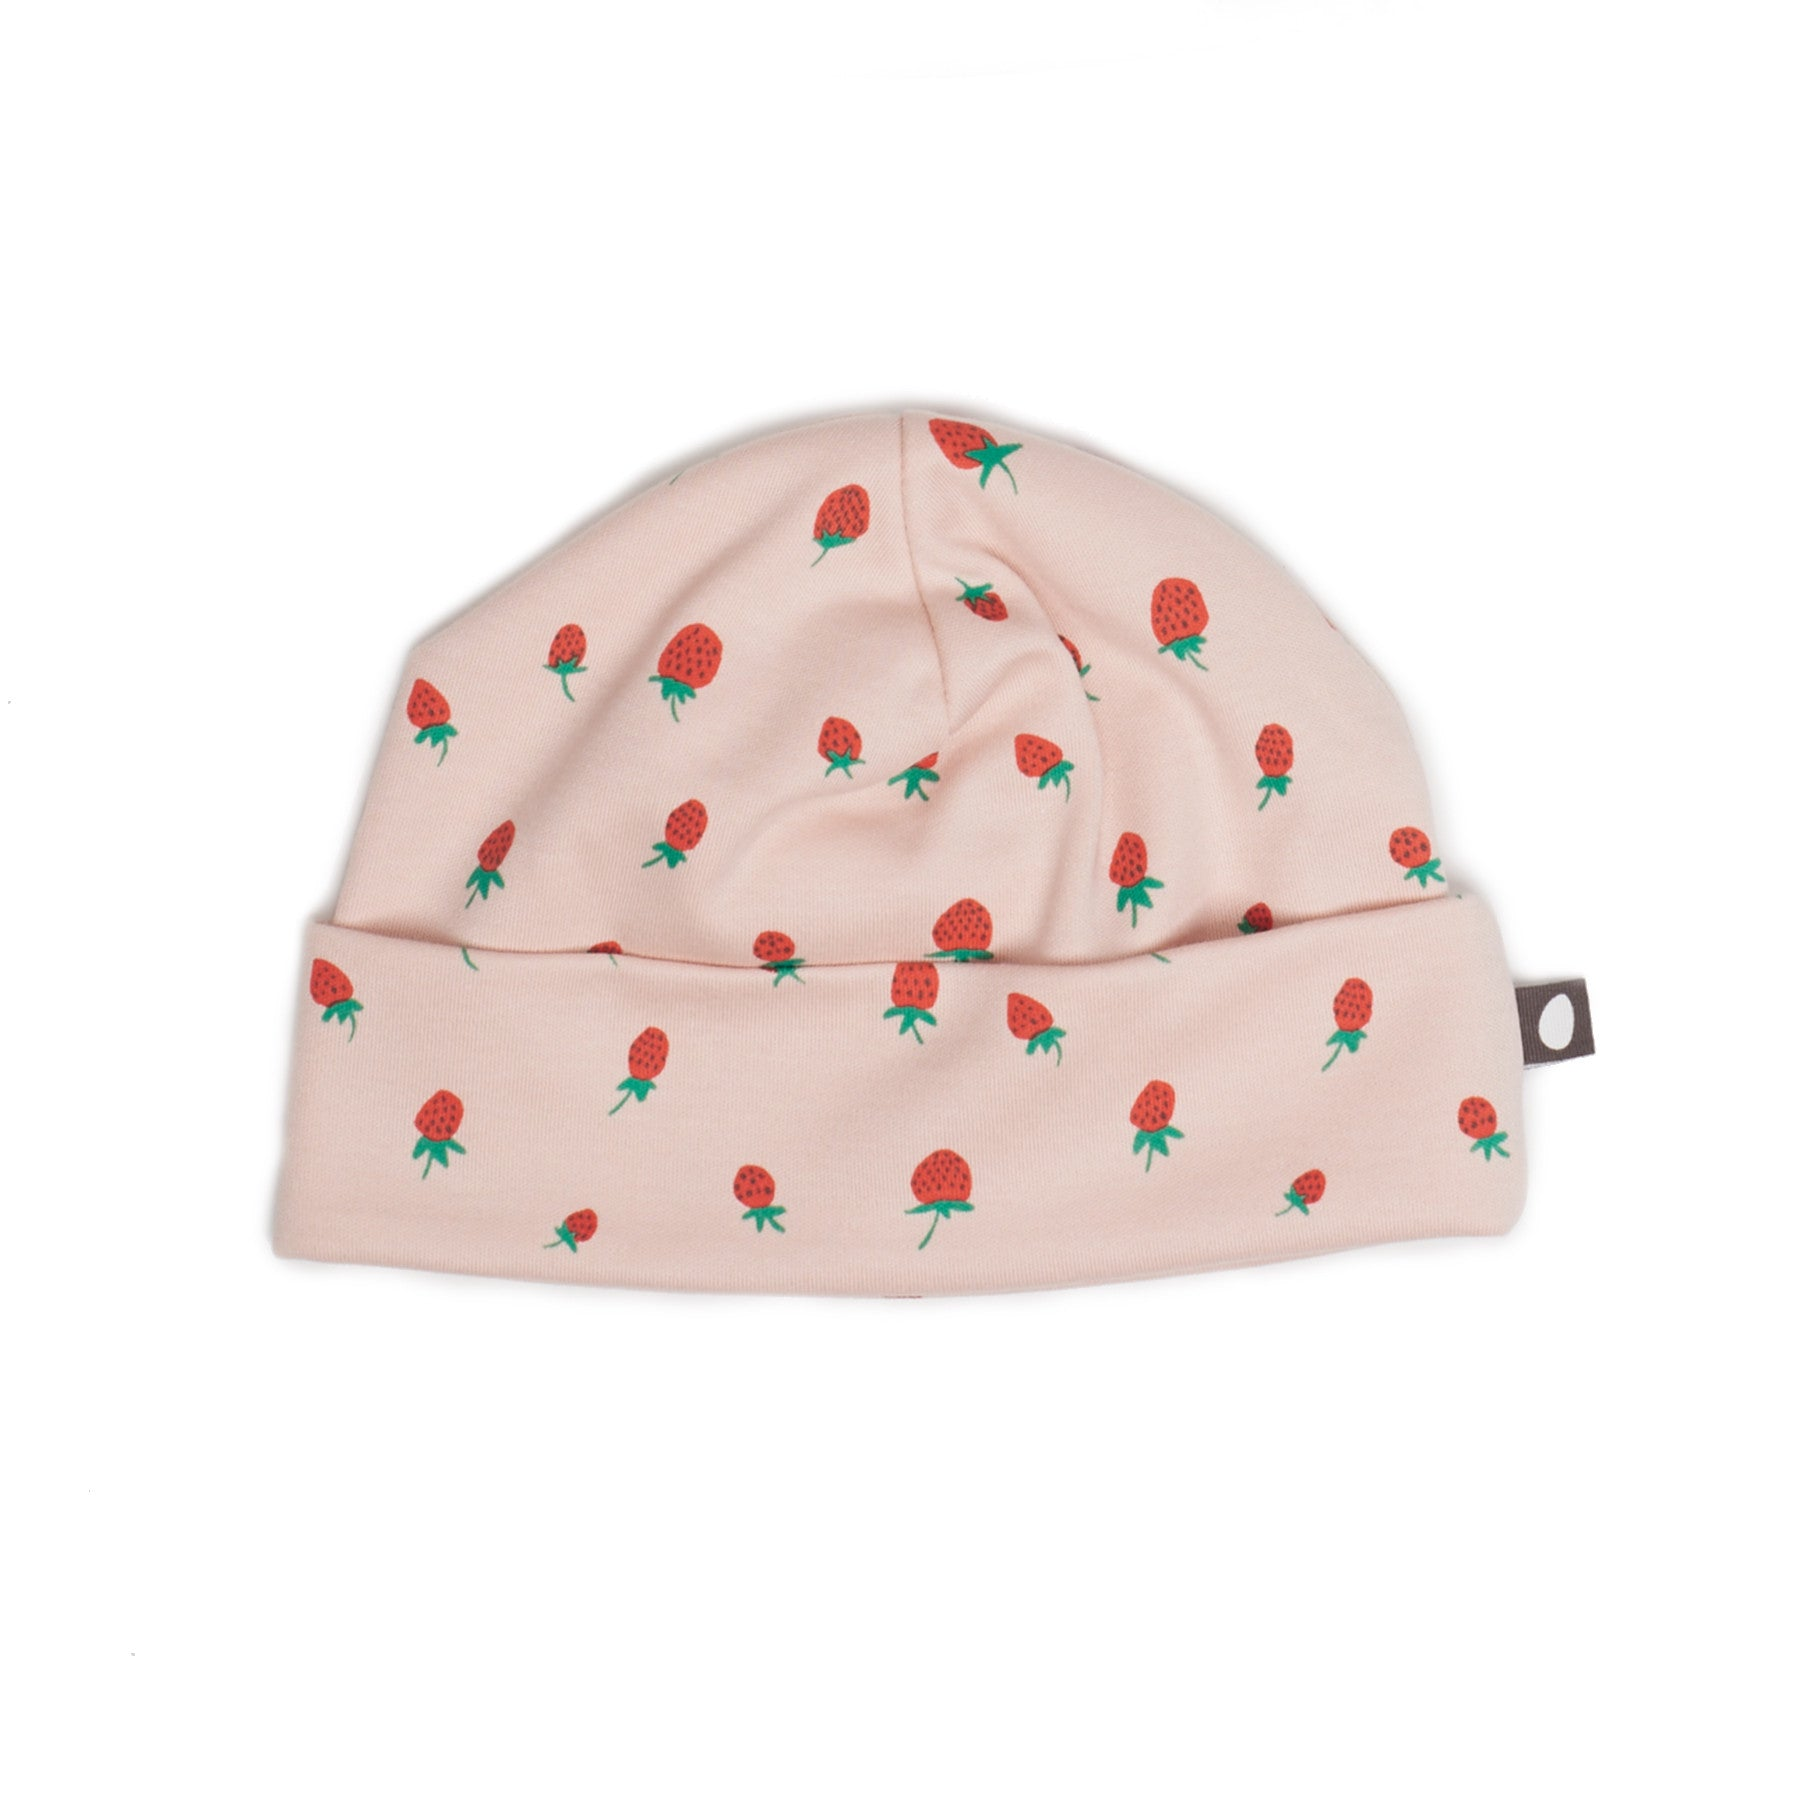 Oeuf Strawberry Hat - Ladida